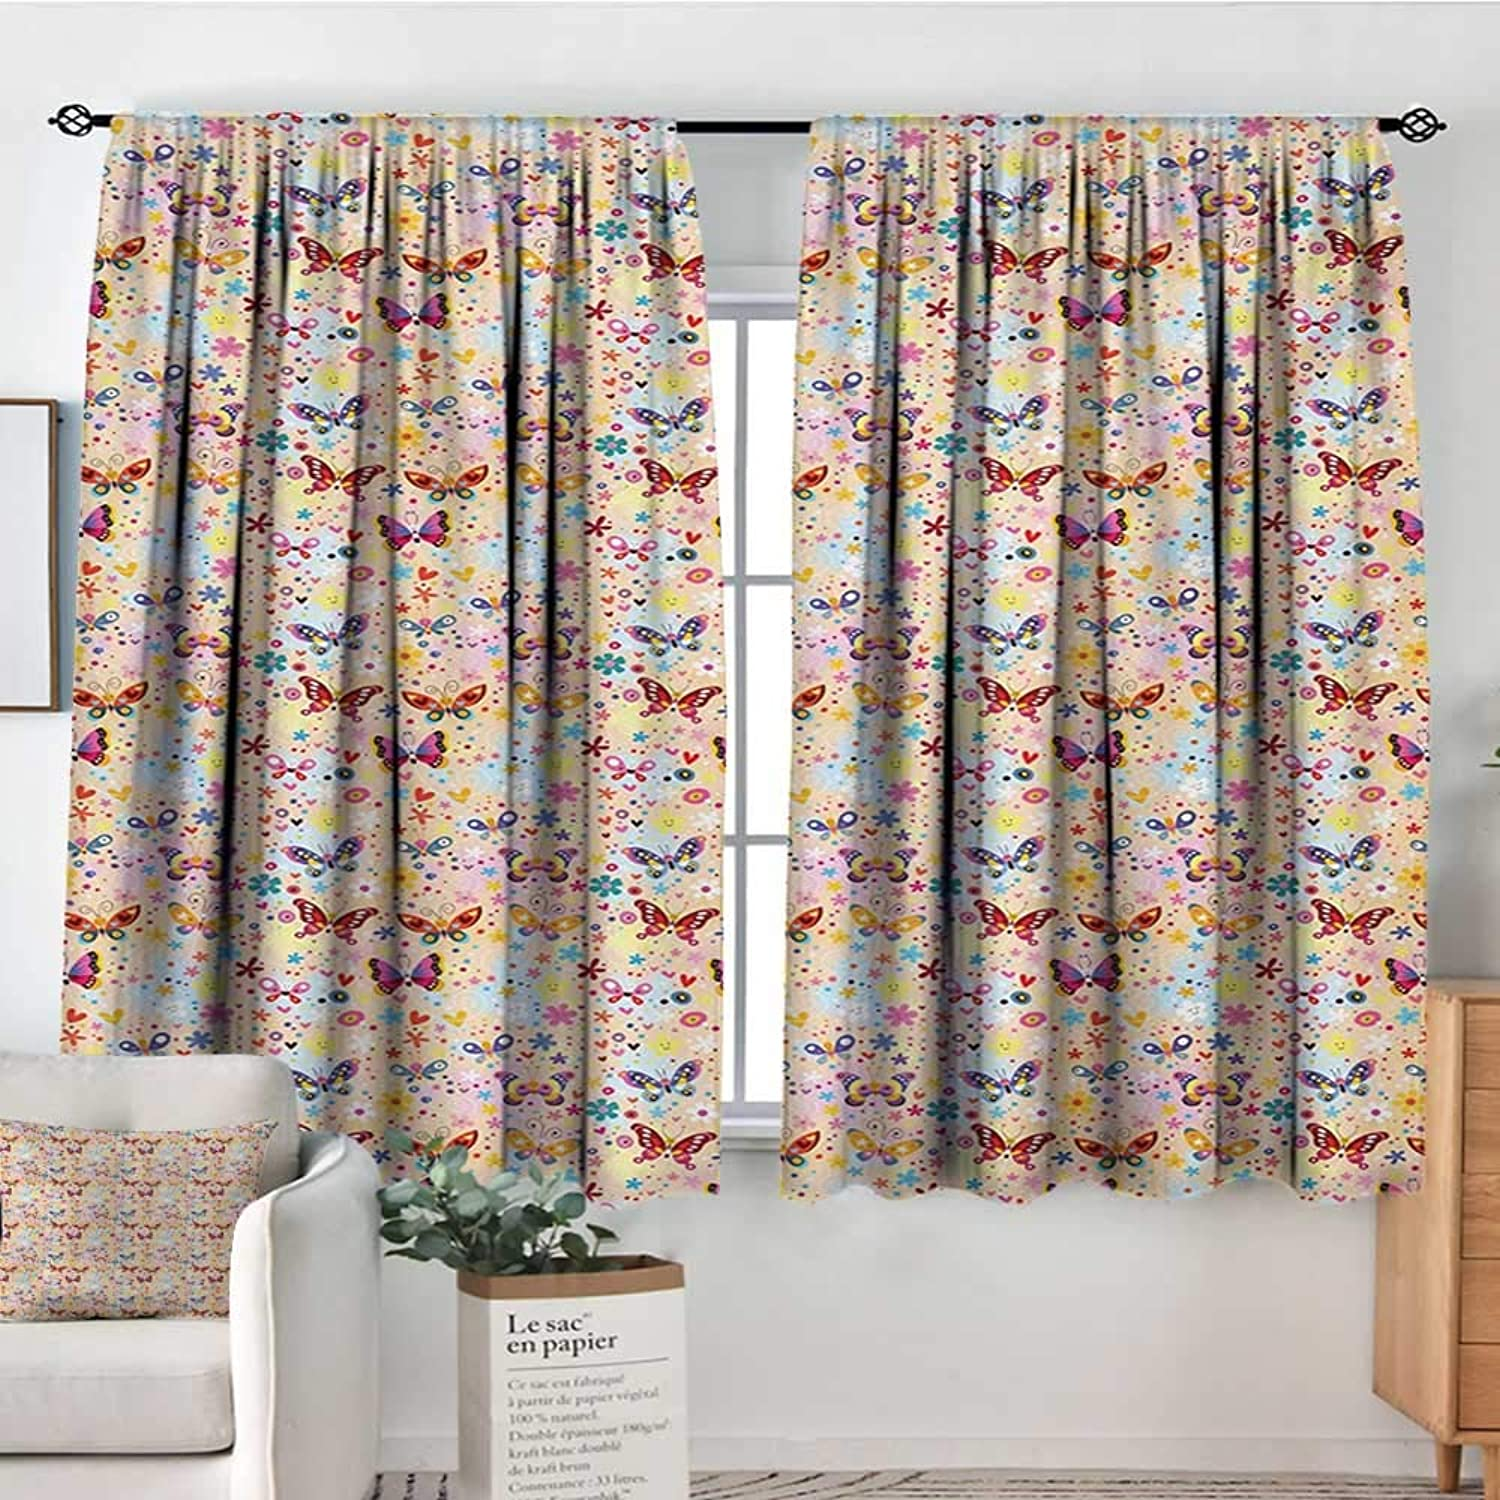 All of better Baby Window Curtain Drape Cute Butterflies Girlish Kids Playroom Flowers Princess Baby Nursery Cartoon Theme Door Curtain Blackout 55  W x 45  L Multicolor